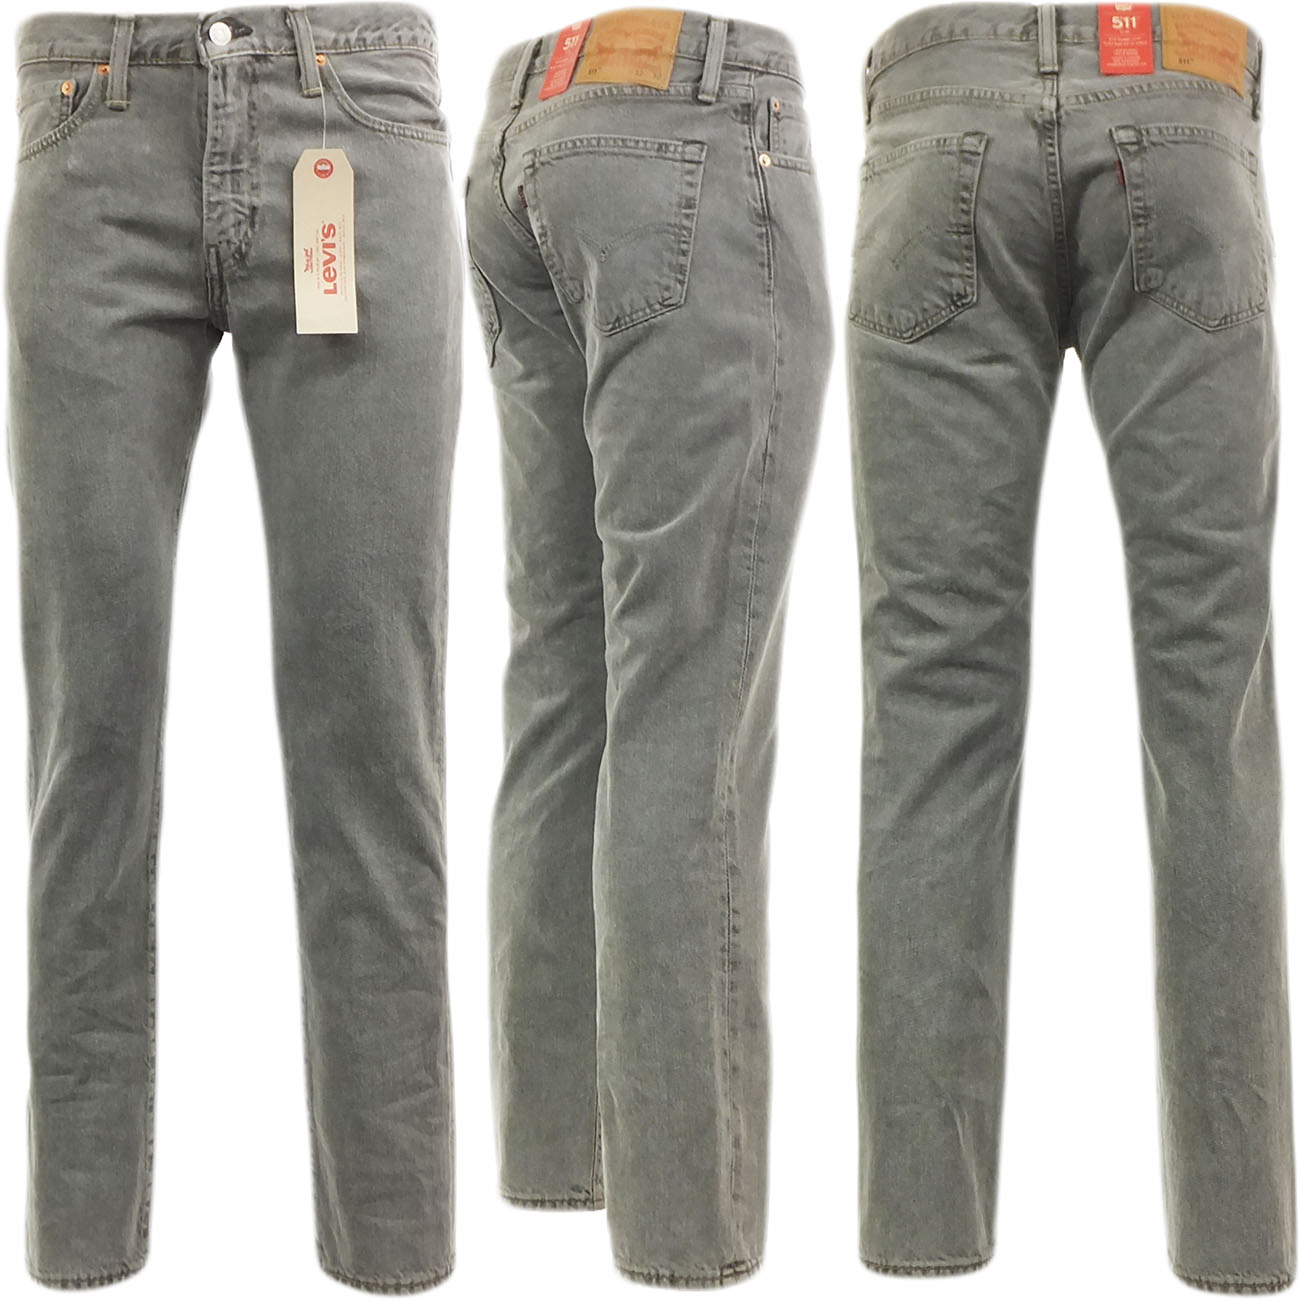 Evelyn Living Short Grey Waist Size 30 Mens Flex Denim Super Stretch Skinny Slim Fit Jeans Trouser All Waist & £ Evelyn Living Short Grey Waist Size 36 Mens Flex Denim Super Stretch Skinny Slim Fit Jeans Trouser All Waist &.